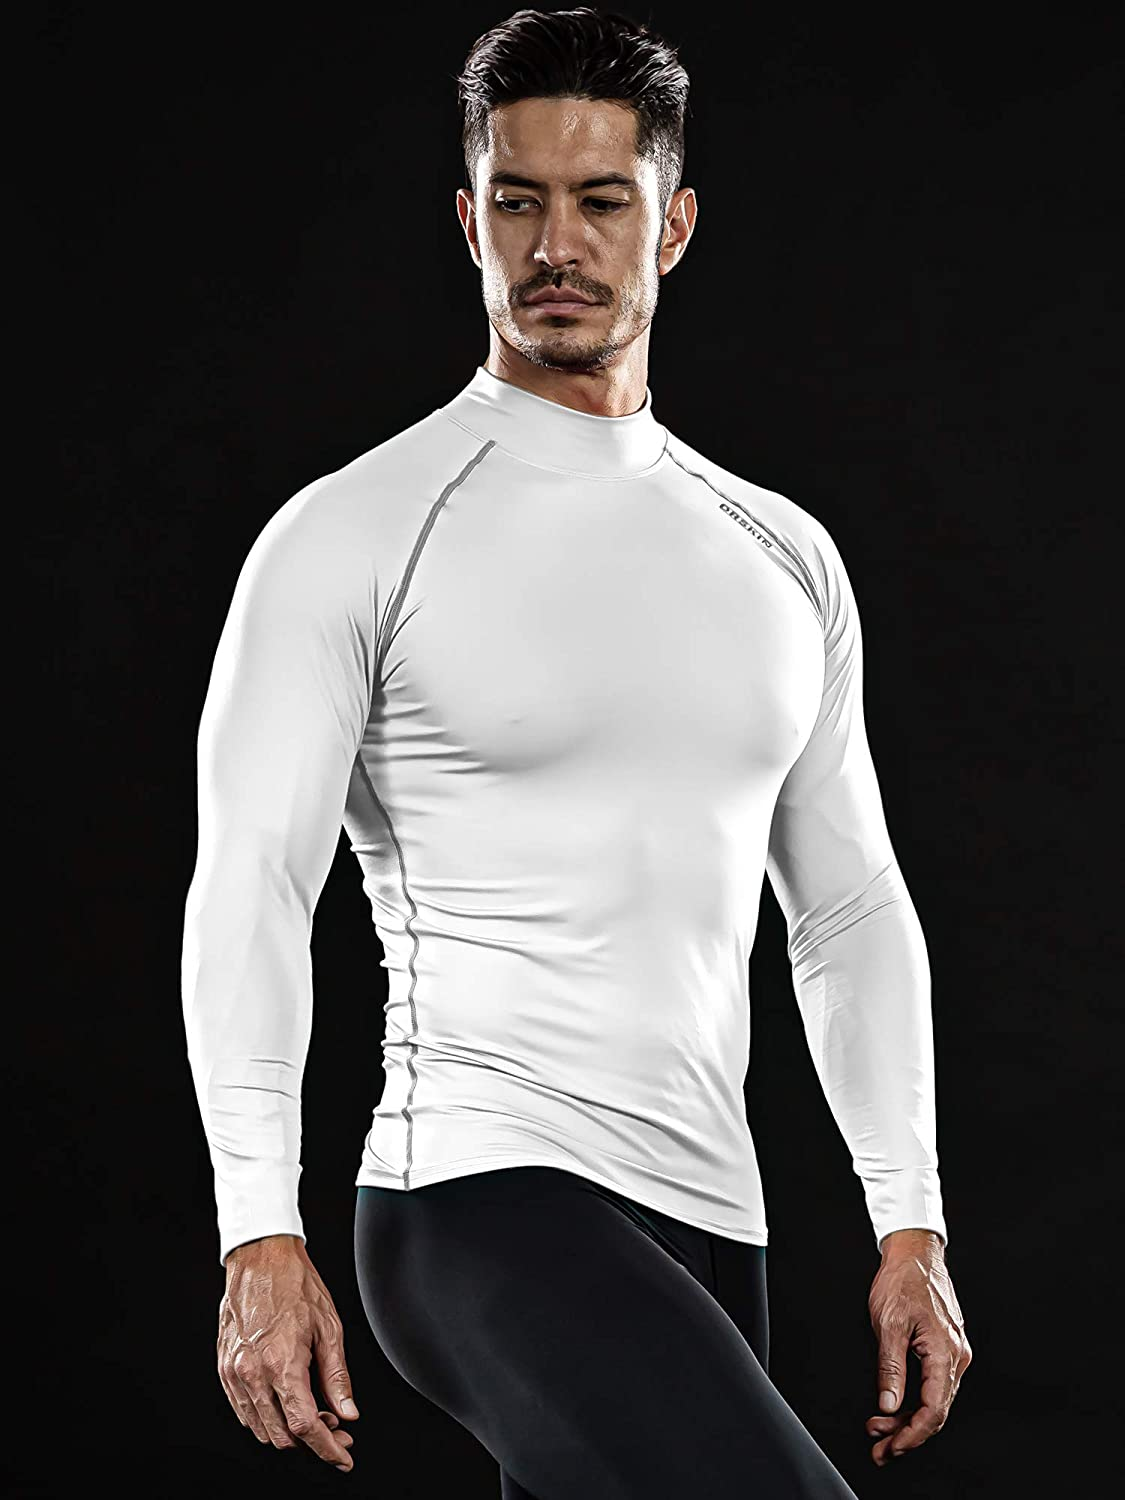 DRSKIN Thermal Wintergear Fleece Coldgear Tight thermal Compression Base Layer